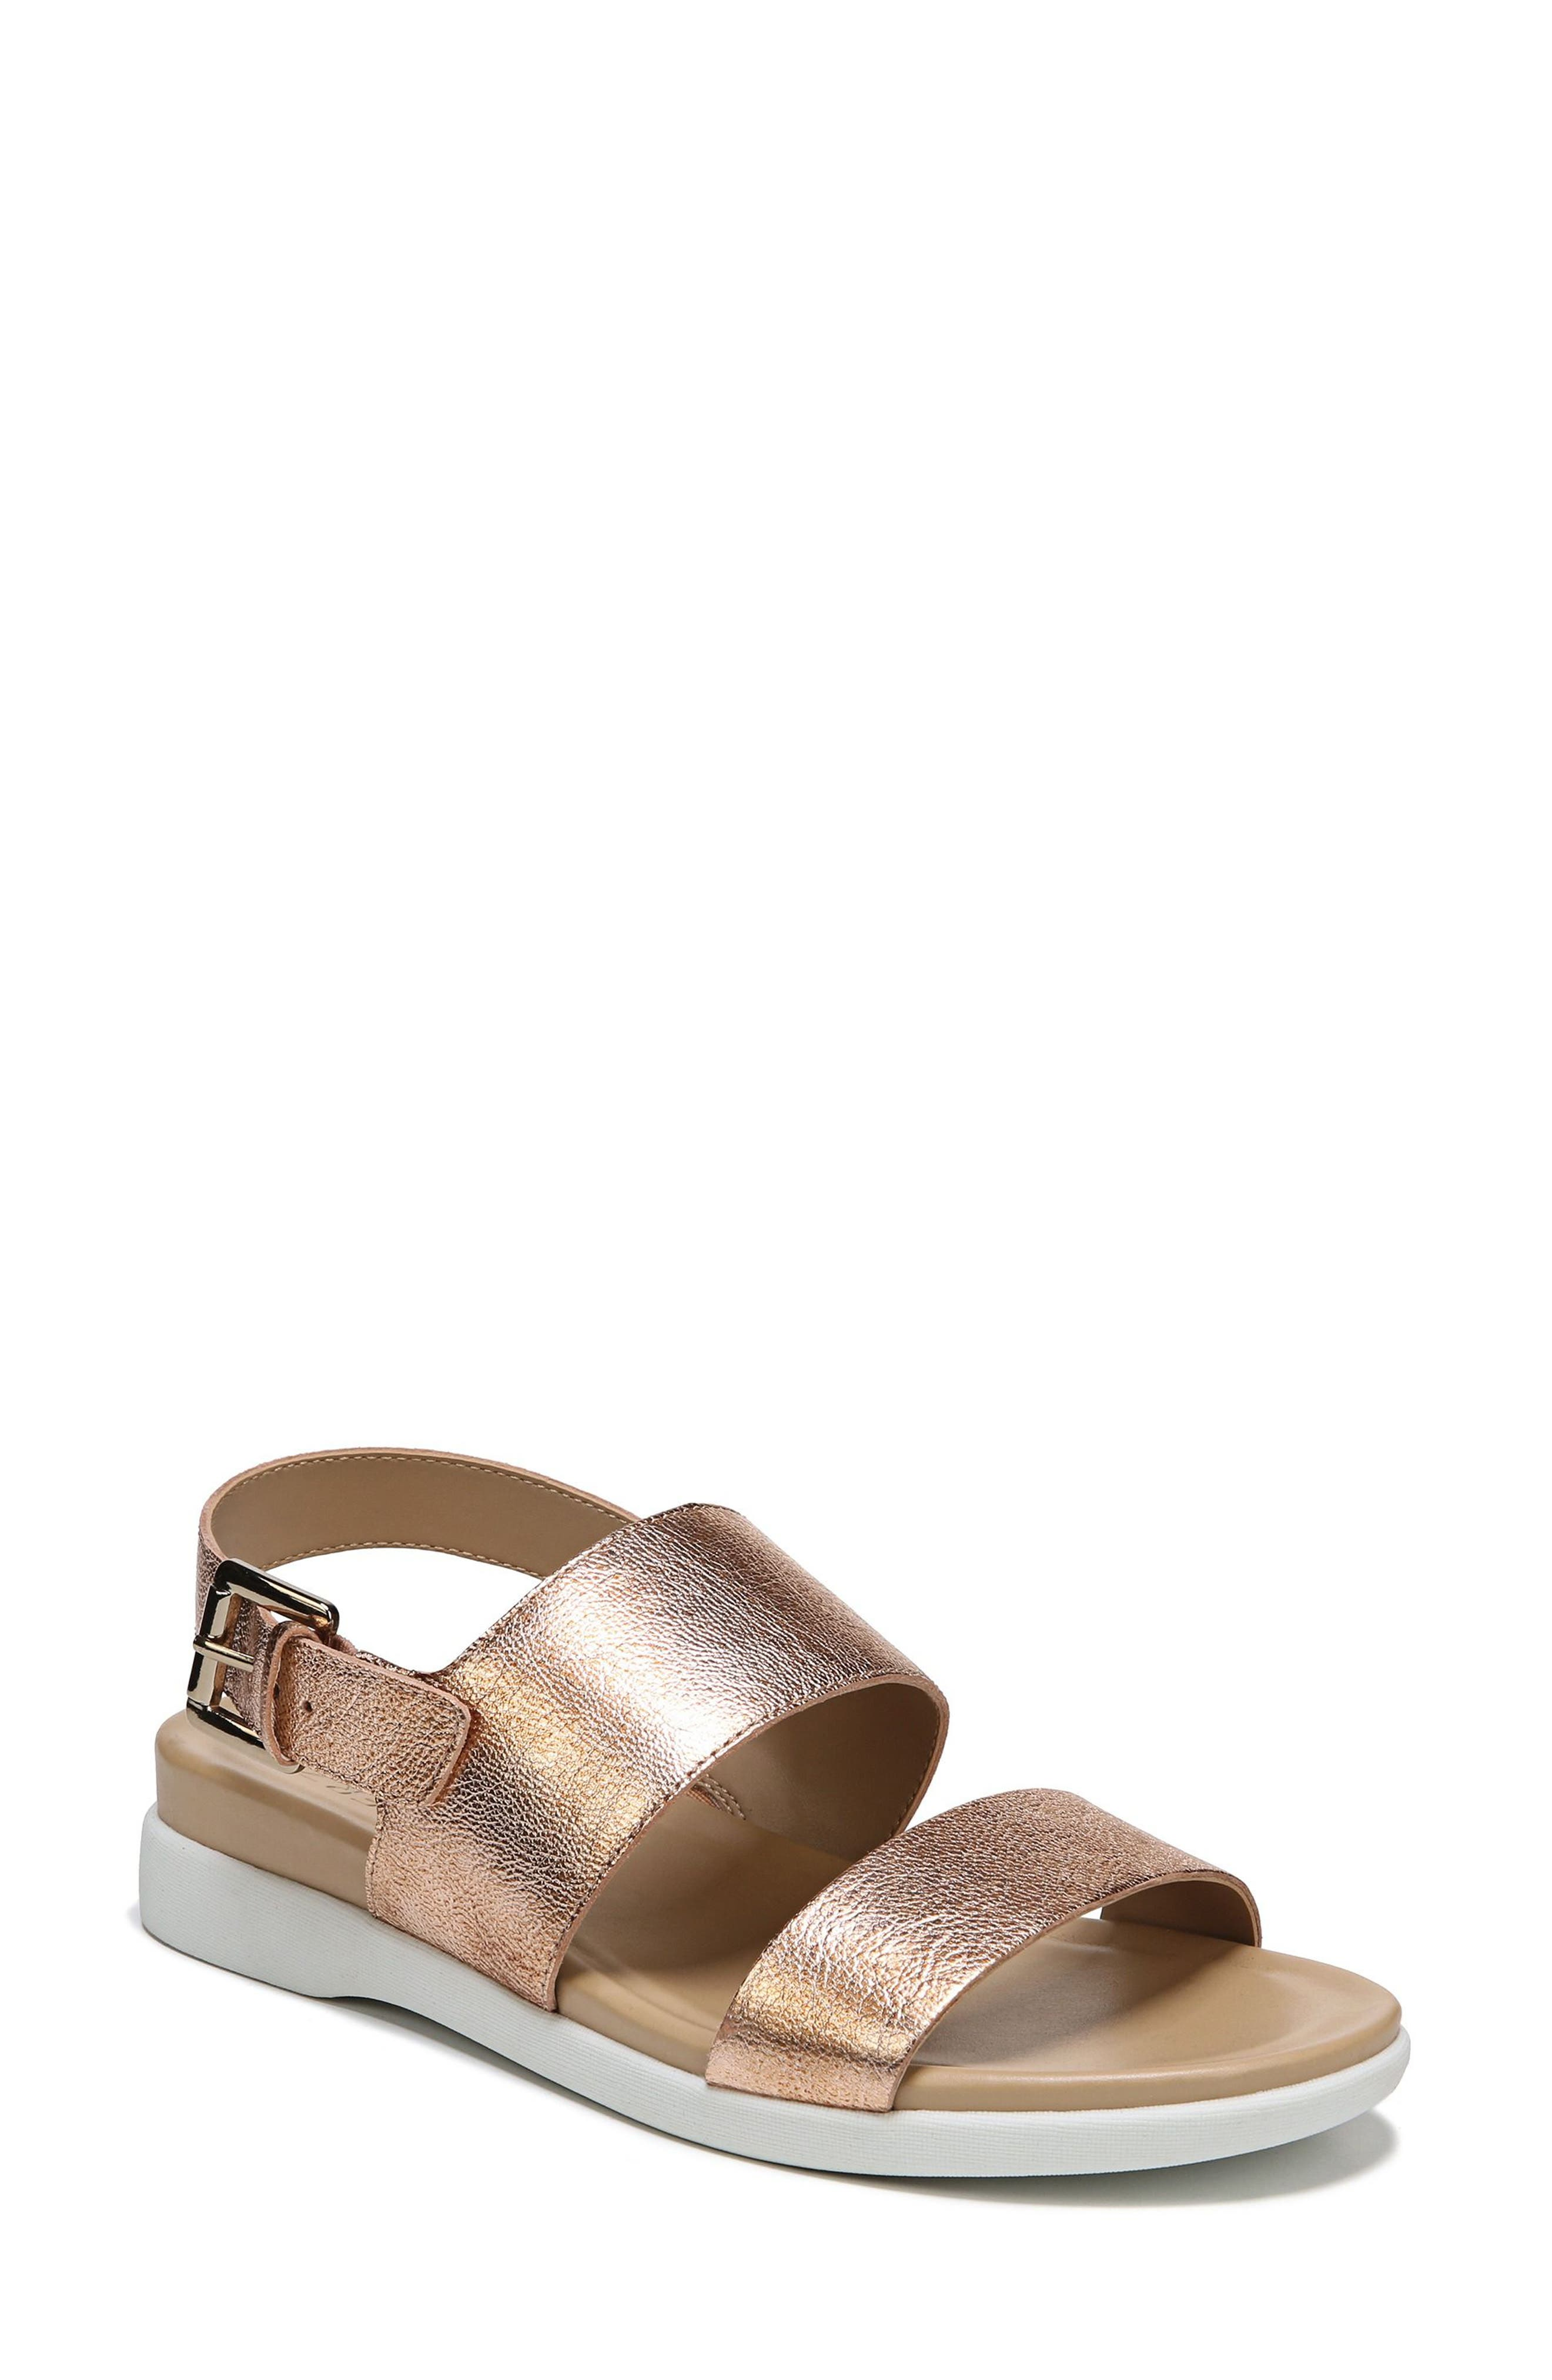 Emory Wedge Sandal,                             Main thumbnail 1, color,                             Copper Leather